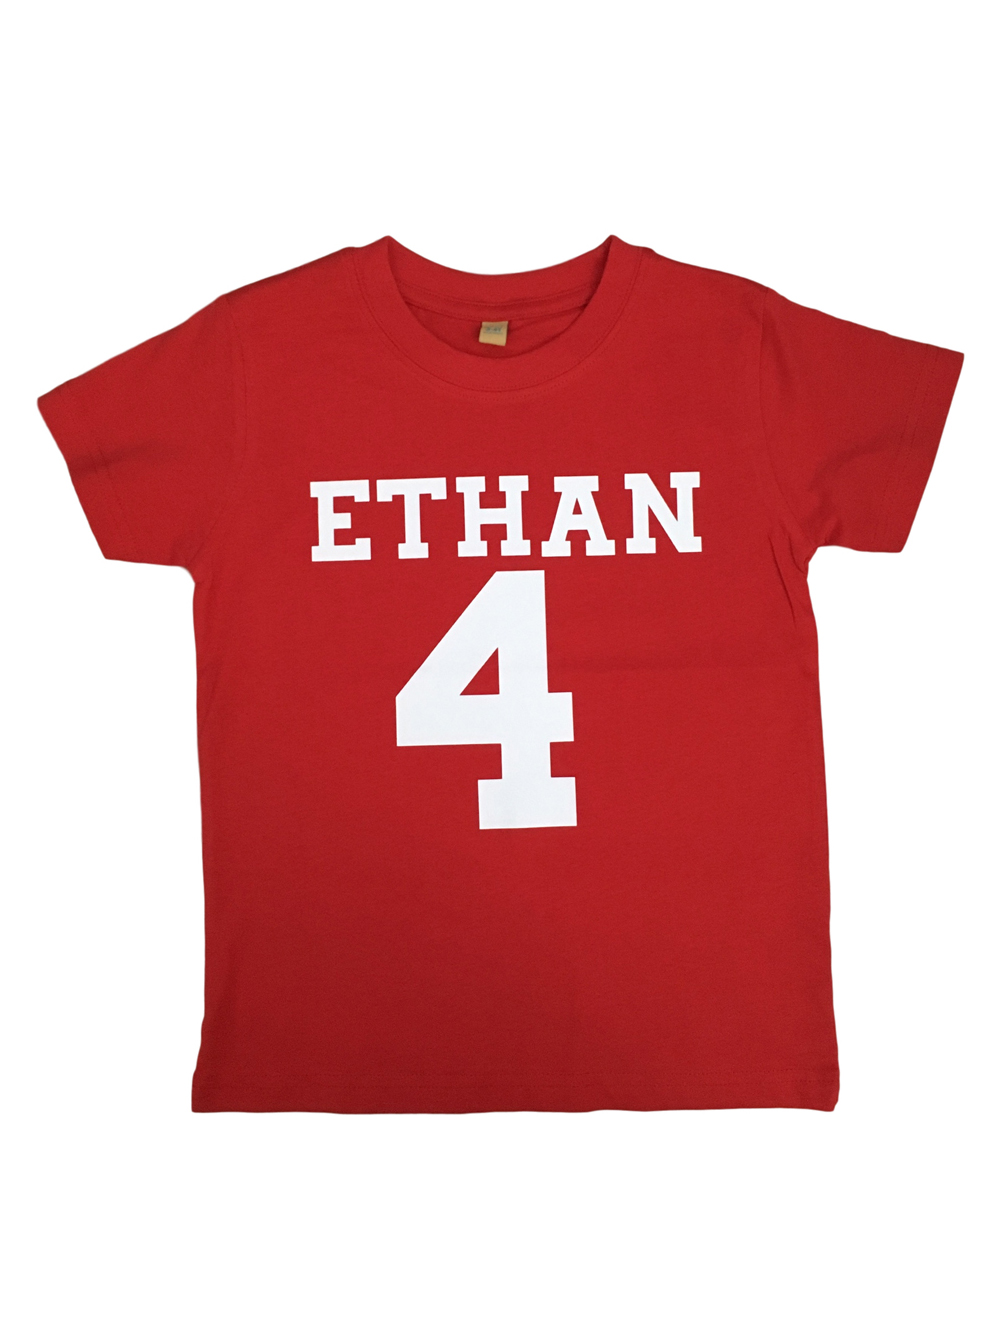 Name And Number Personalised Tshirt – Red